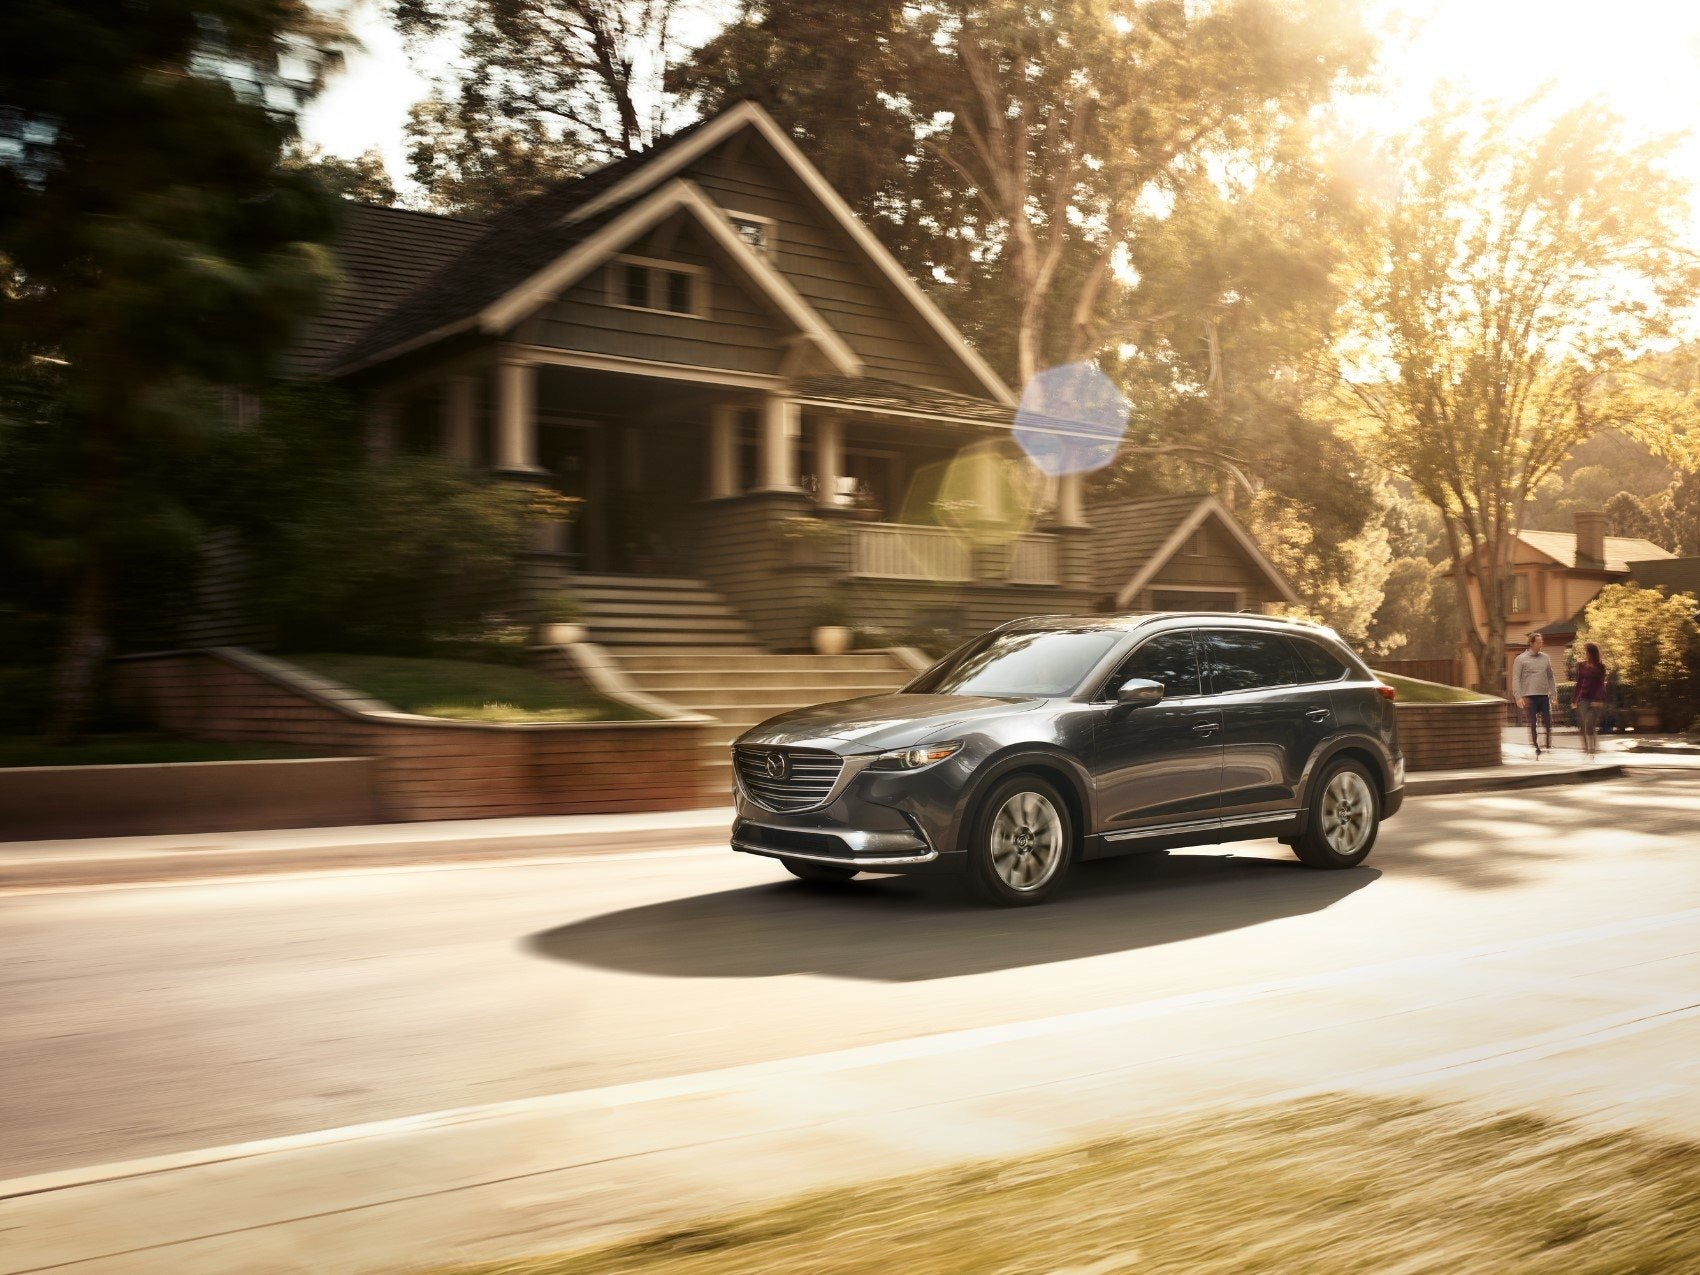 2019 Mazda CX-9 Grand Touring Review: Quiet & Confident